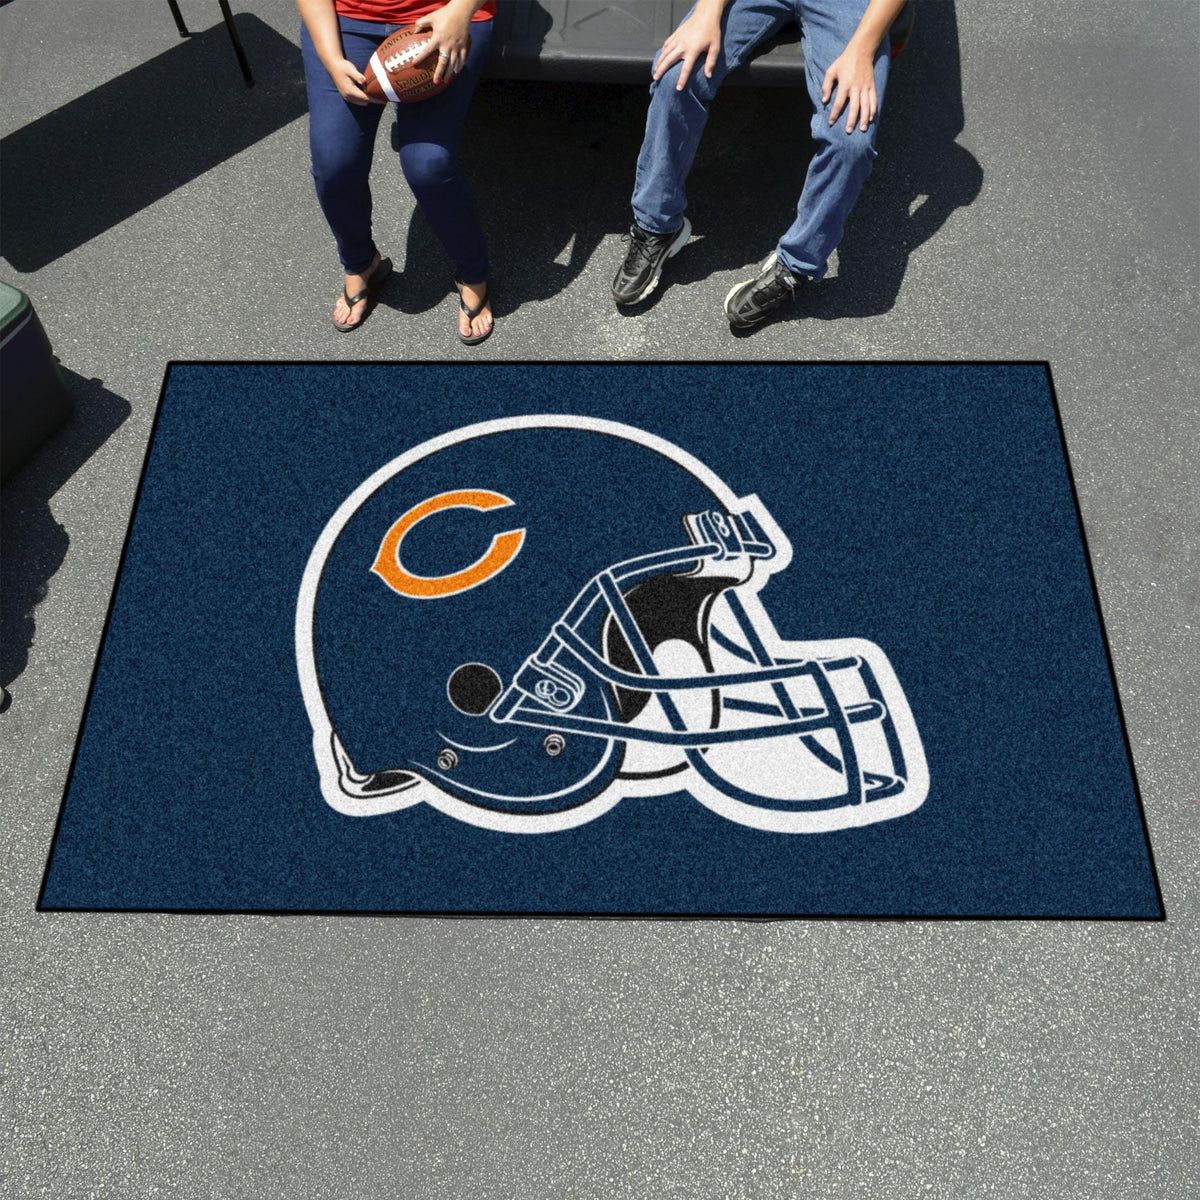 "NFL - Ulti-Mat, 59.5"" x 94.5"" NFL Mats, Rectangular Mats, Ulti-Mat, NFL, Home Fan Mats Chicago Bears"